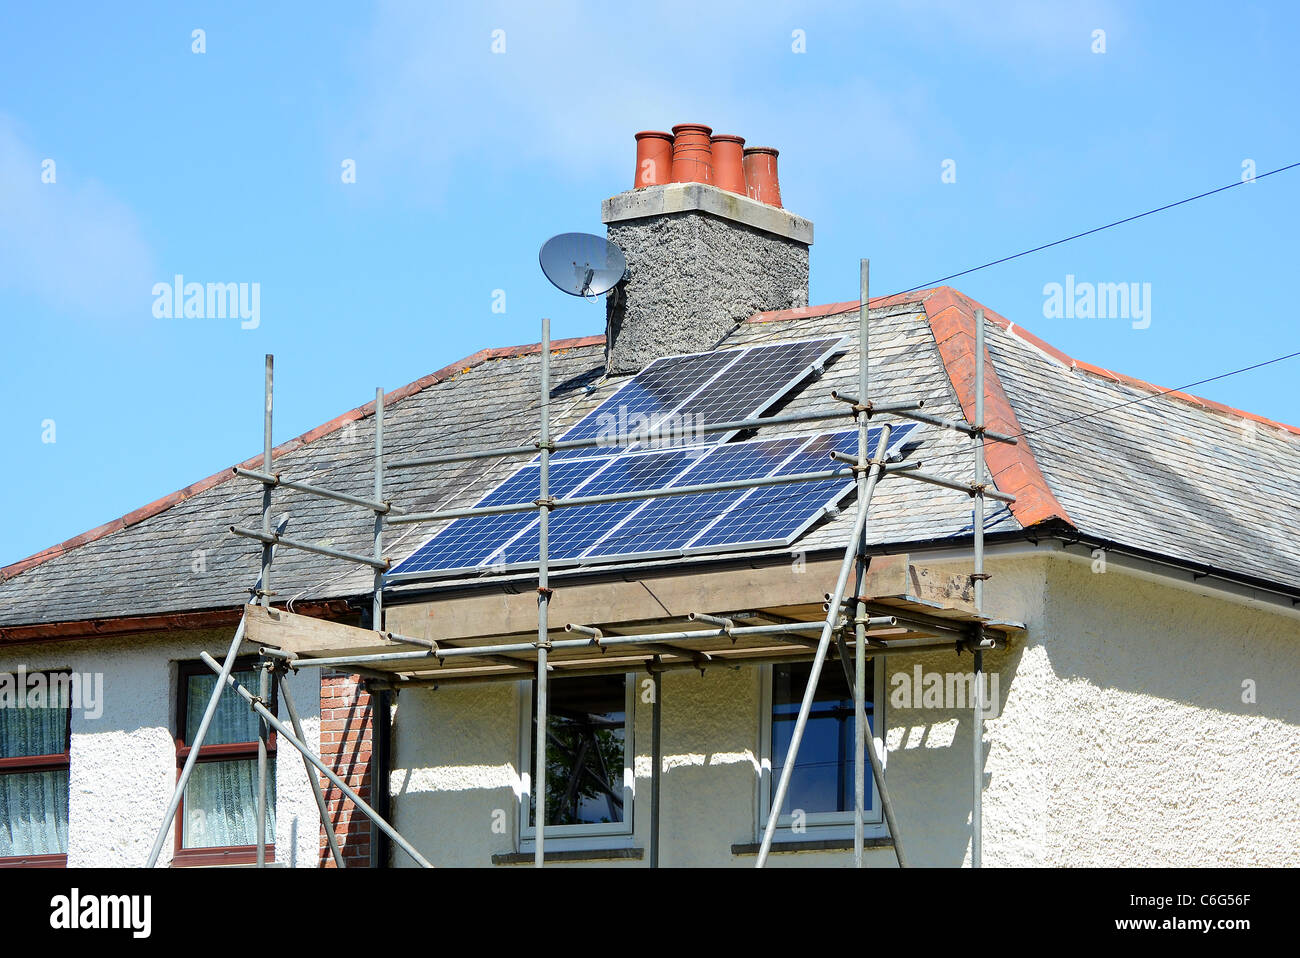 Solar Roof Panels being fitted to suburban house in Manchester, UK - Stock Image